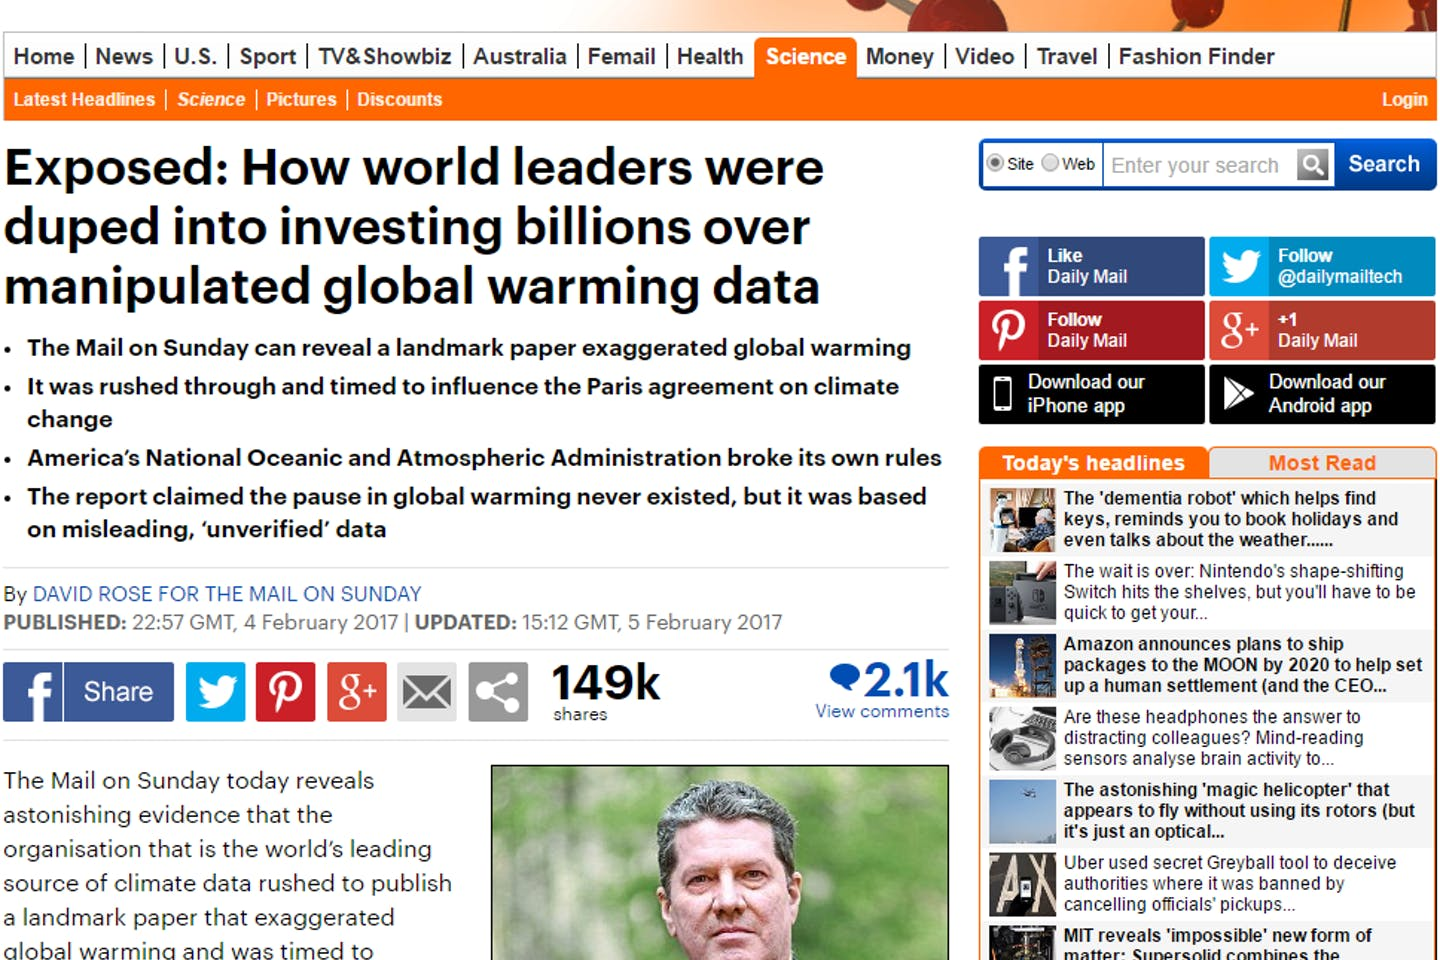 Mail Online's story disparaging climate science has been criticised for being inaccurate